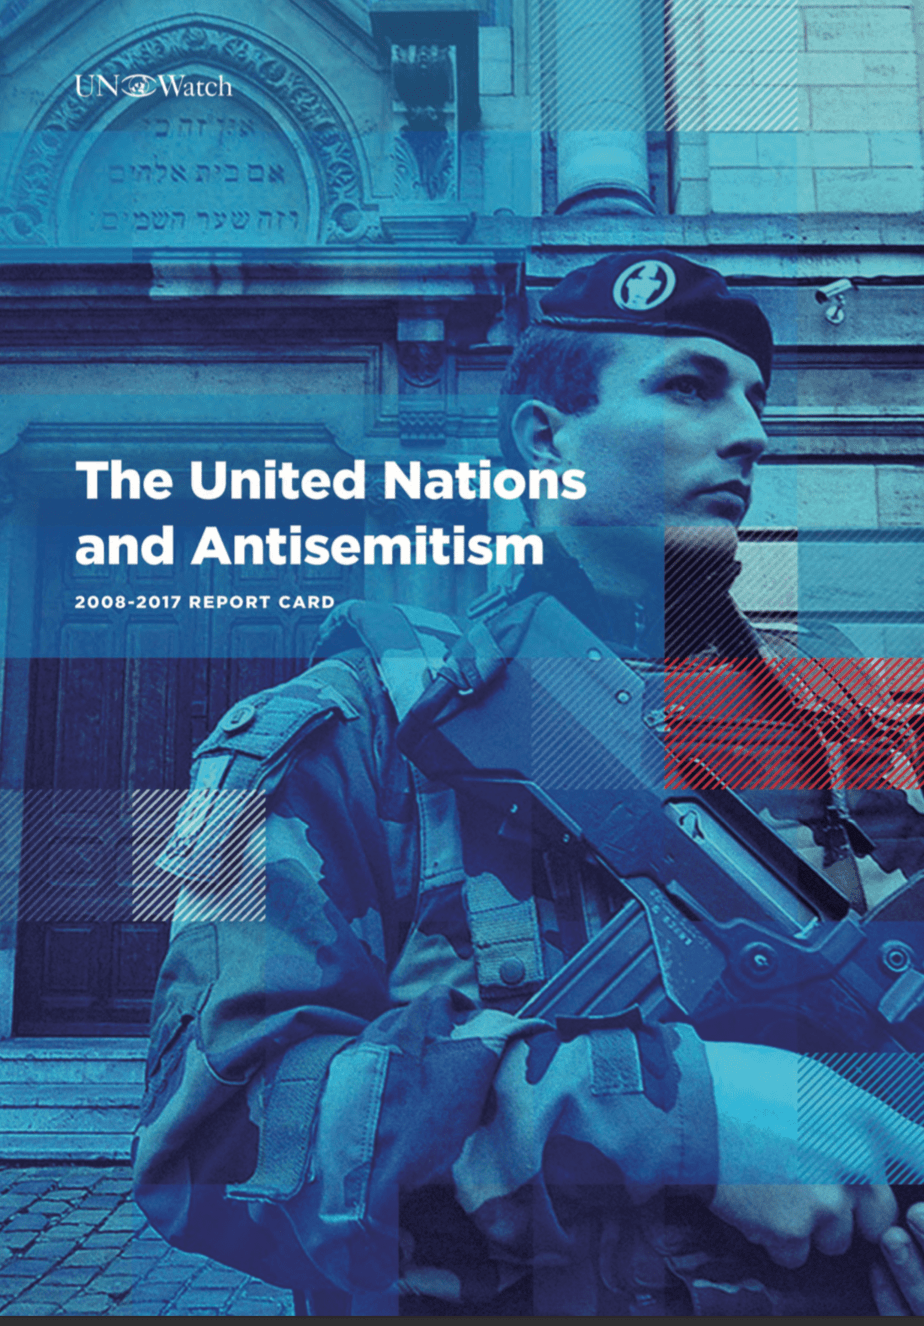 Report: UN Ignored Antisemitism for Decade - UN Watch